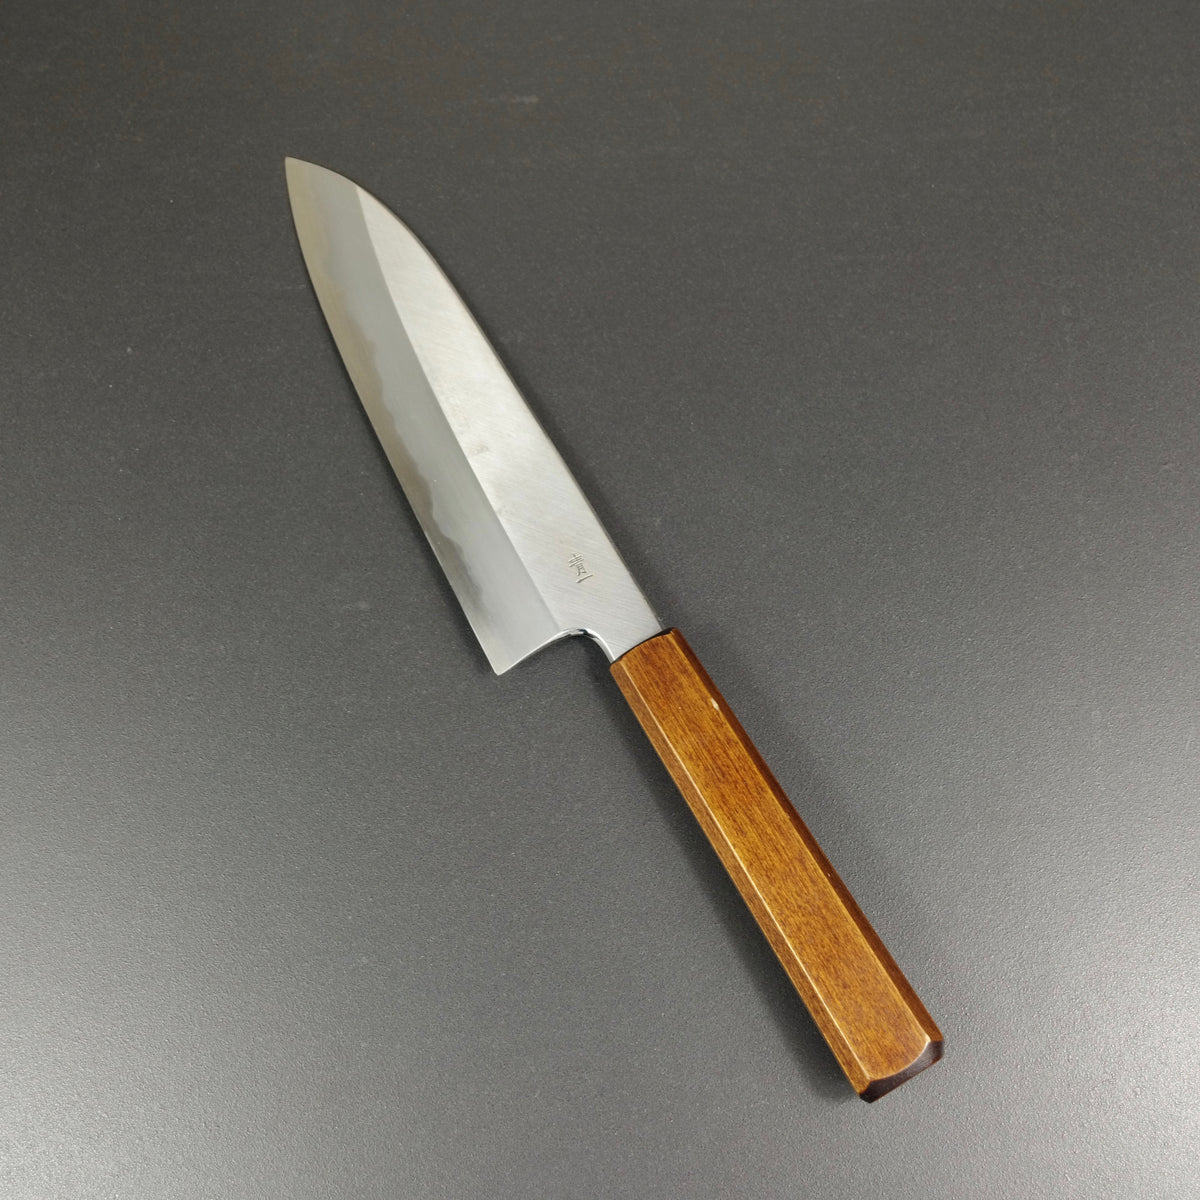 Santoku knife, Aogami 1 carbon steel, traditional kasumi finish - Kagekiyo